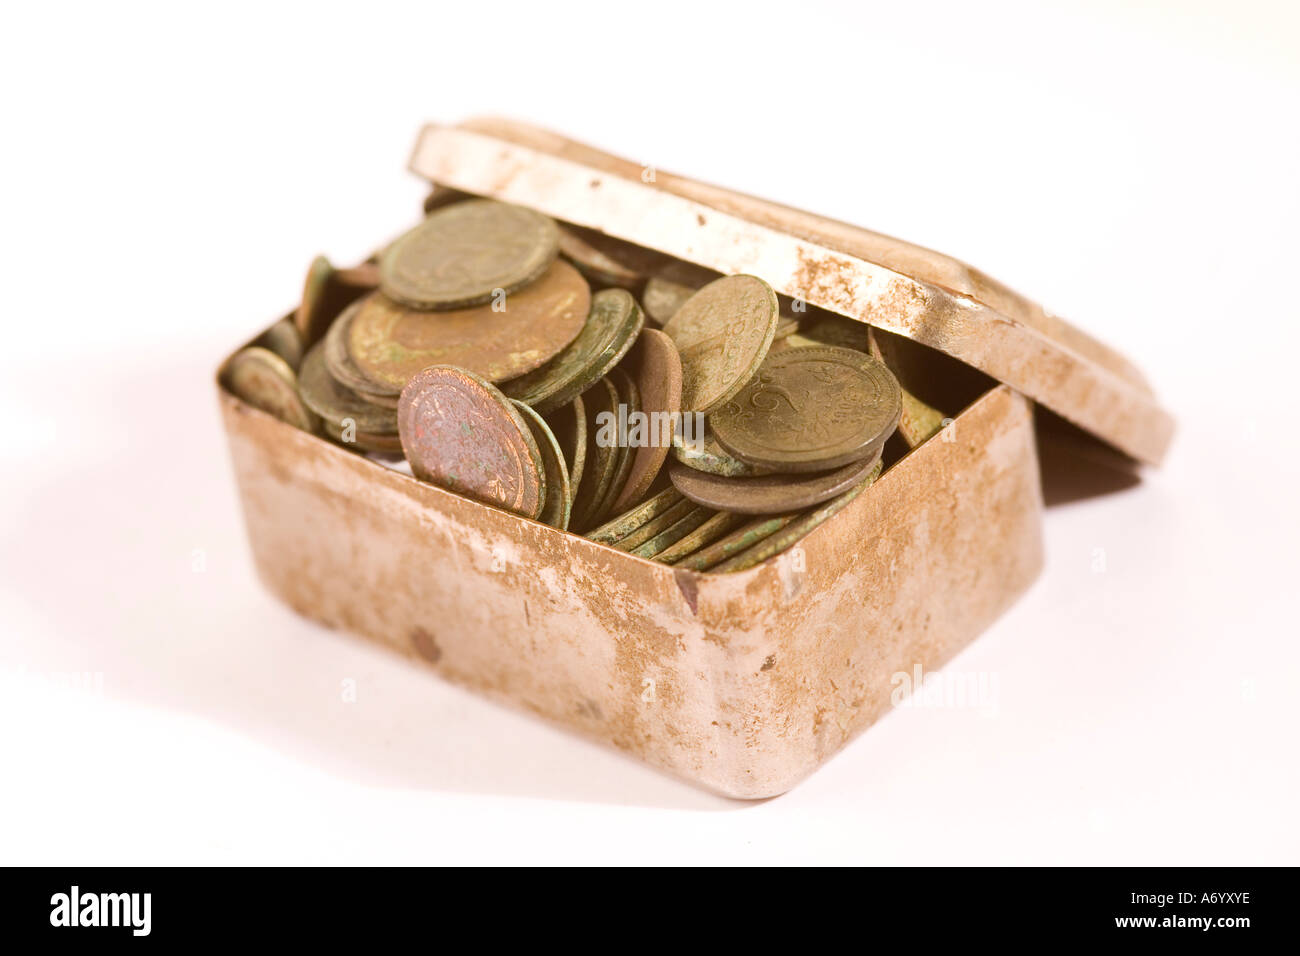 Old collections of coins - Stock Image